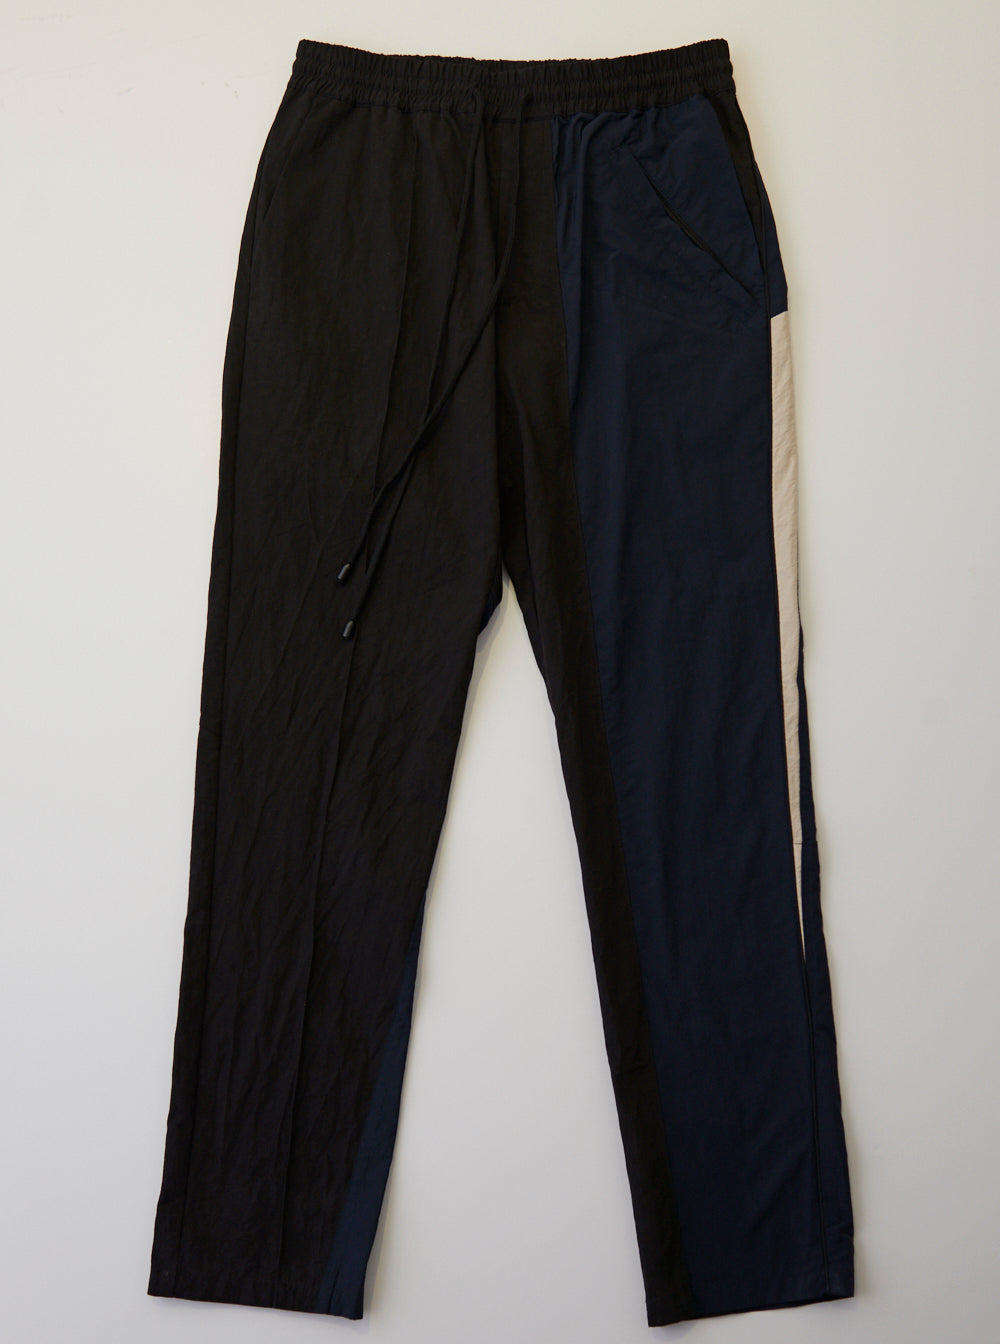 Vinti Andrews Panel Trousers Black Twill